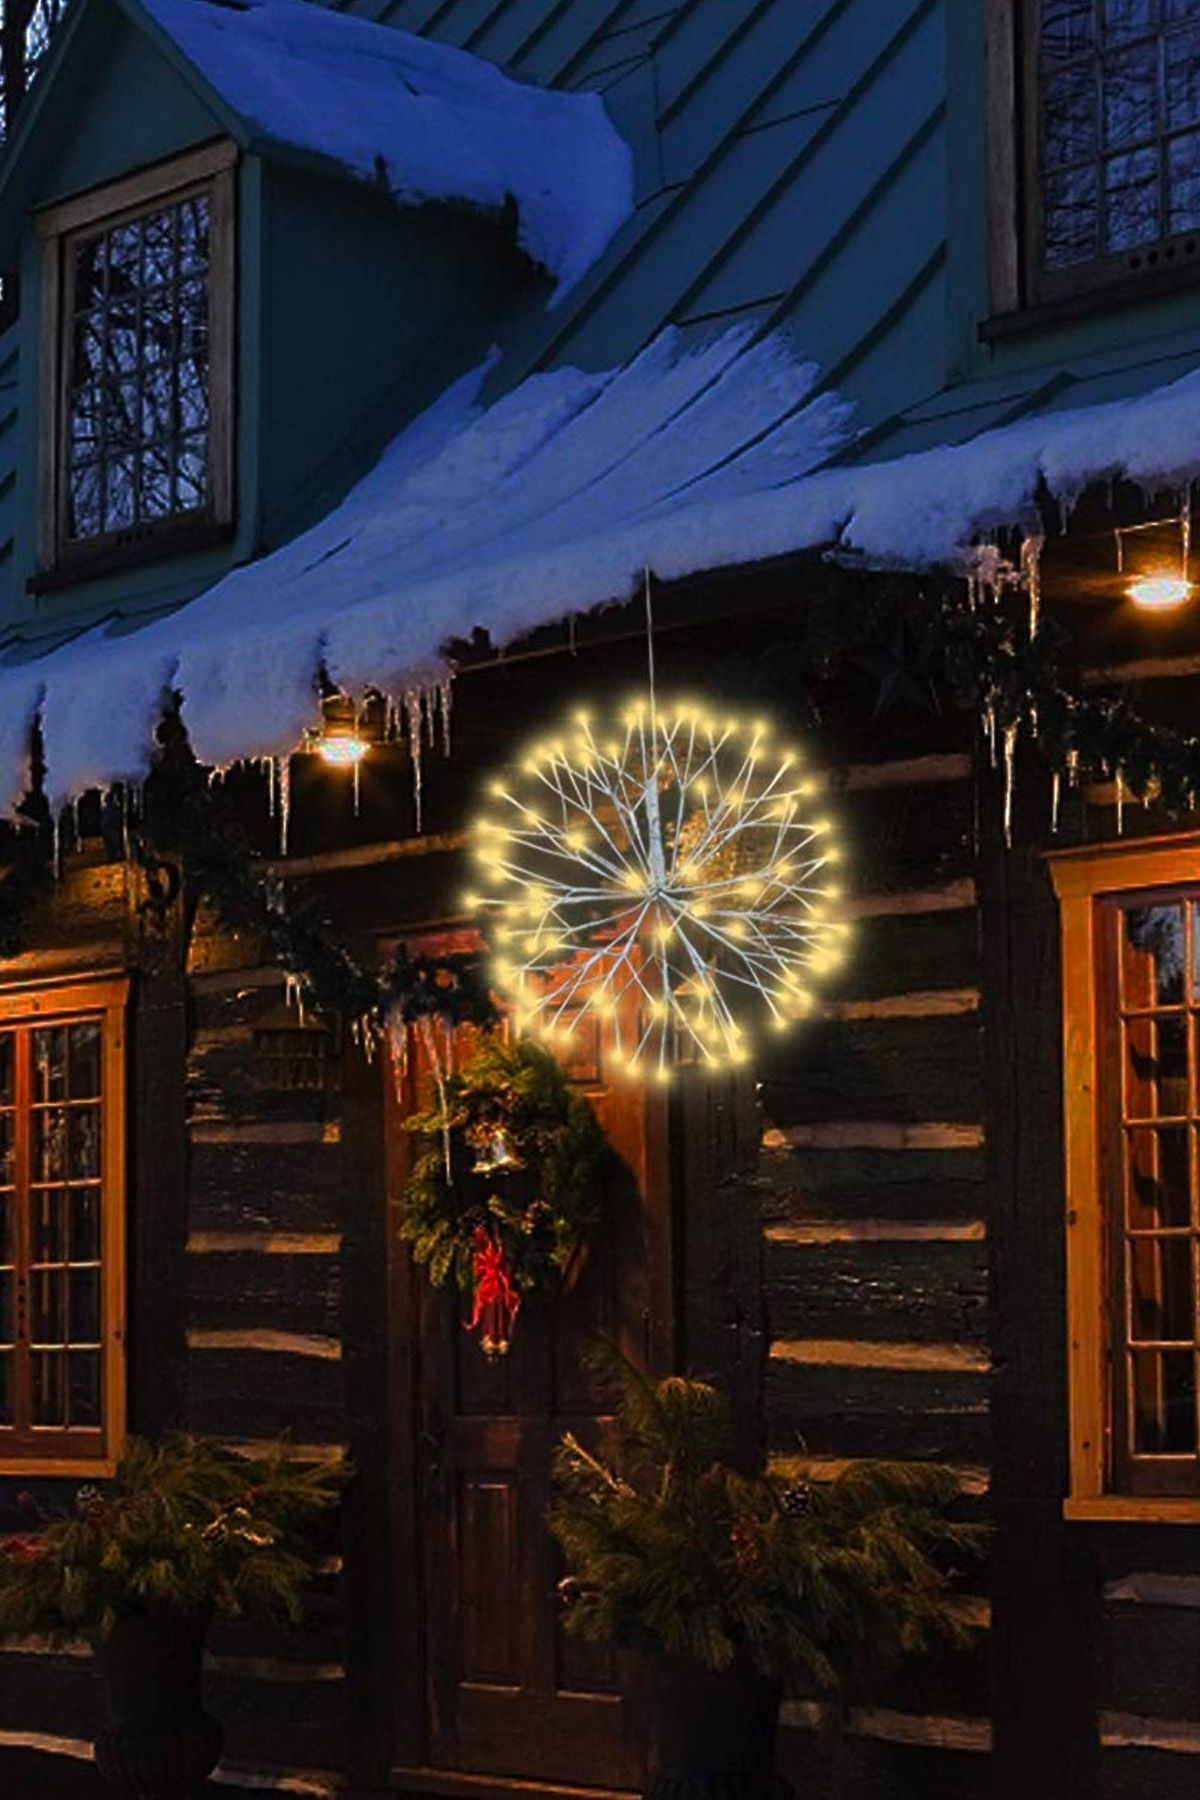 20 Best Outdoor Christmas Lights - Lighted Holiday Decorations for ...